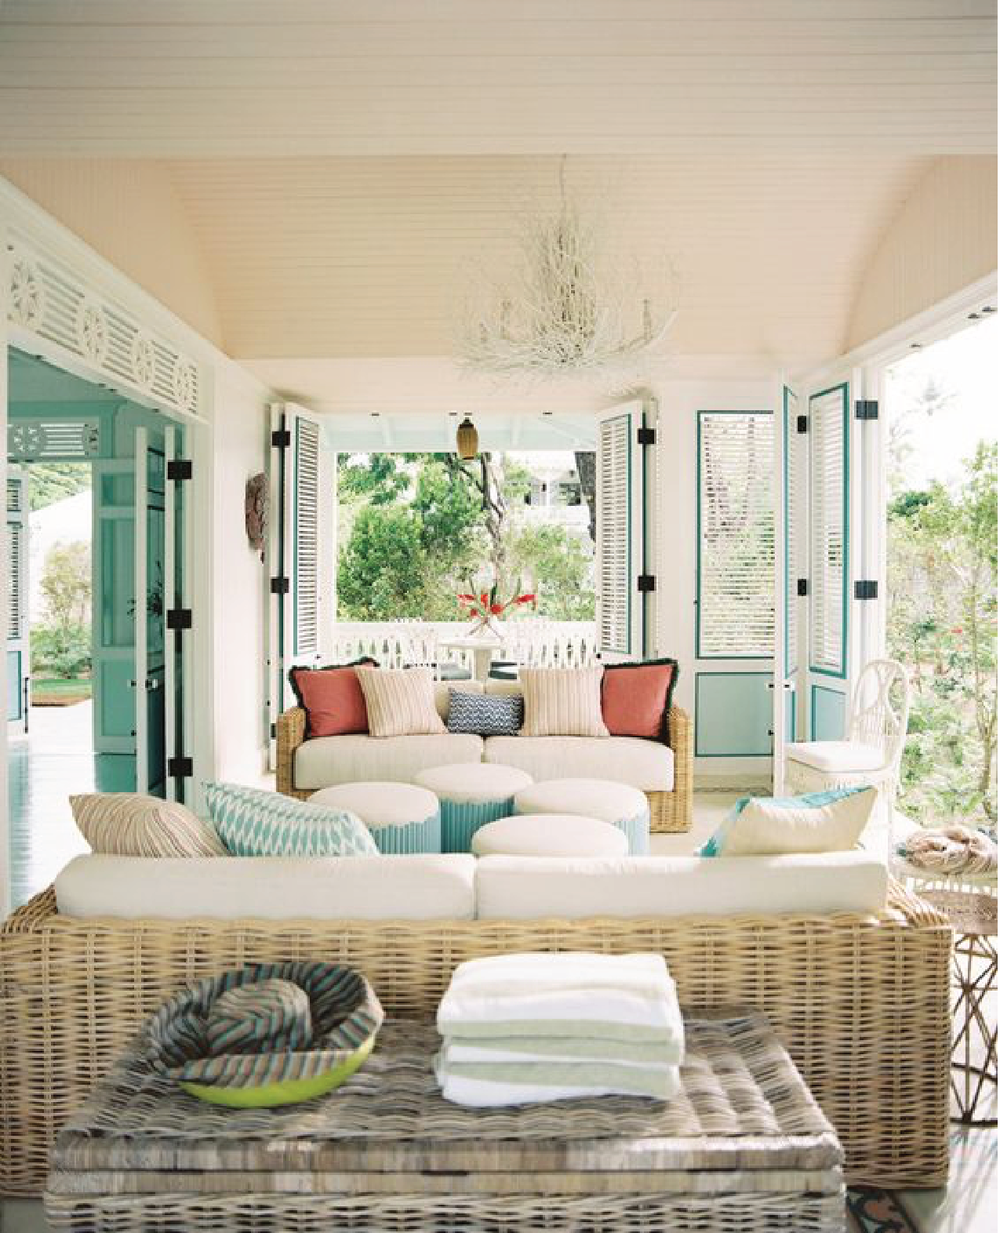 celerie kemble 's playa del grand home shot by  Patrick cline